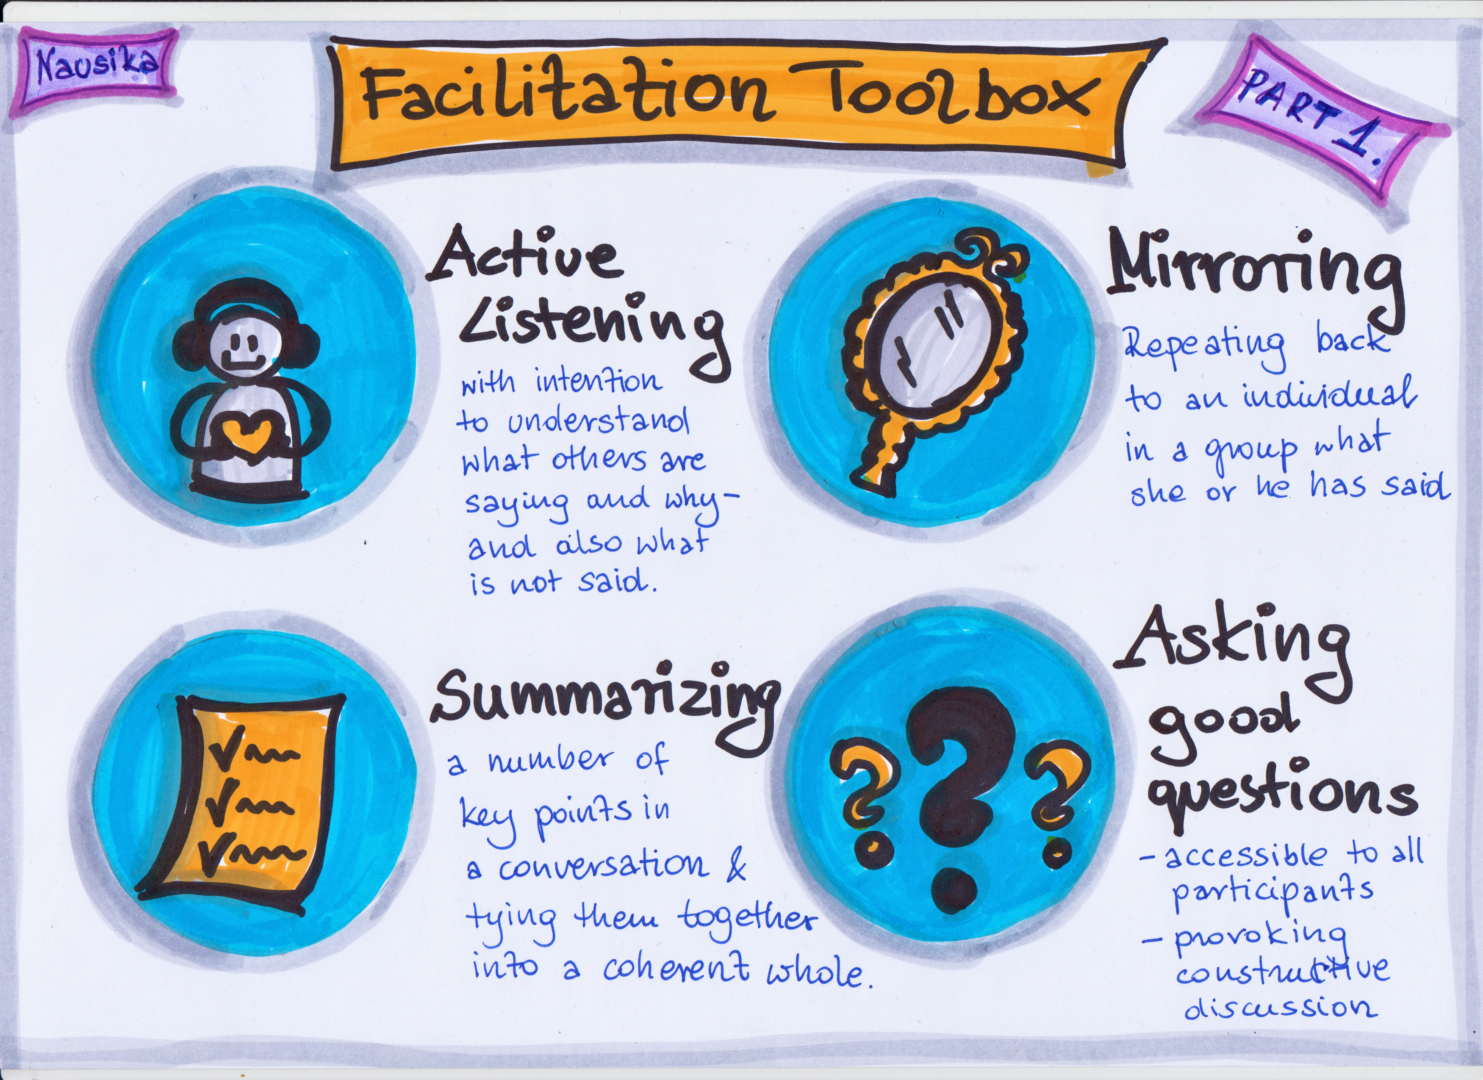 facilitation-toolbox1